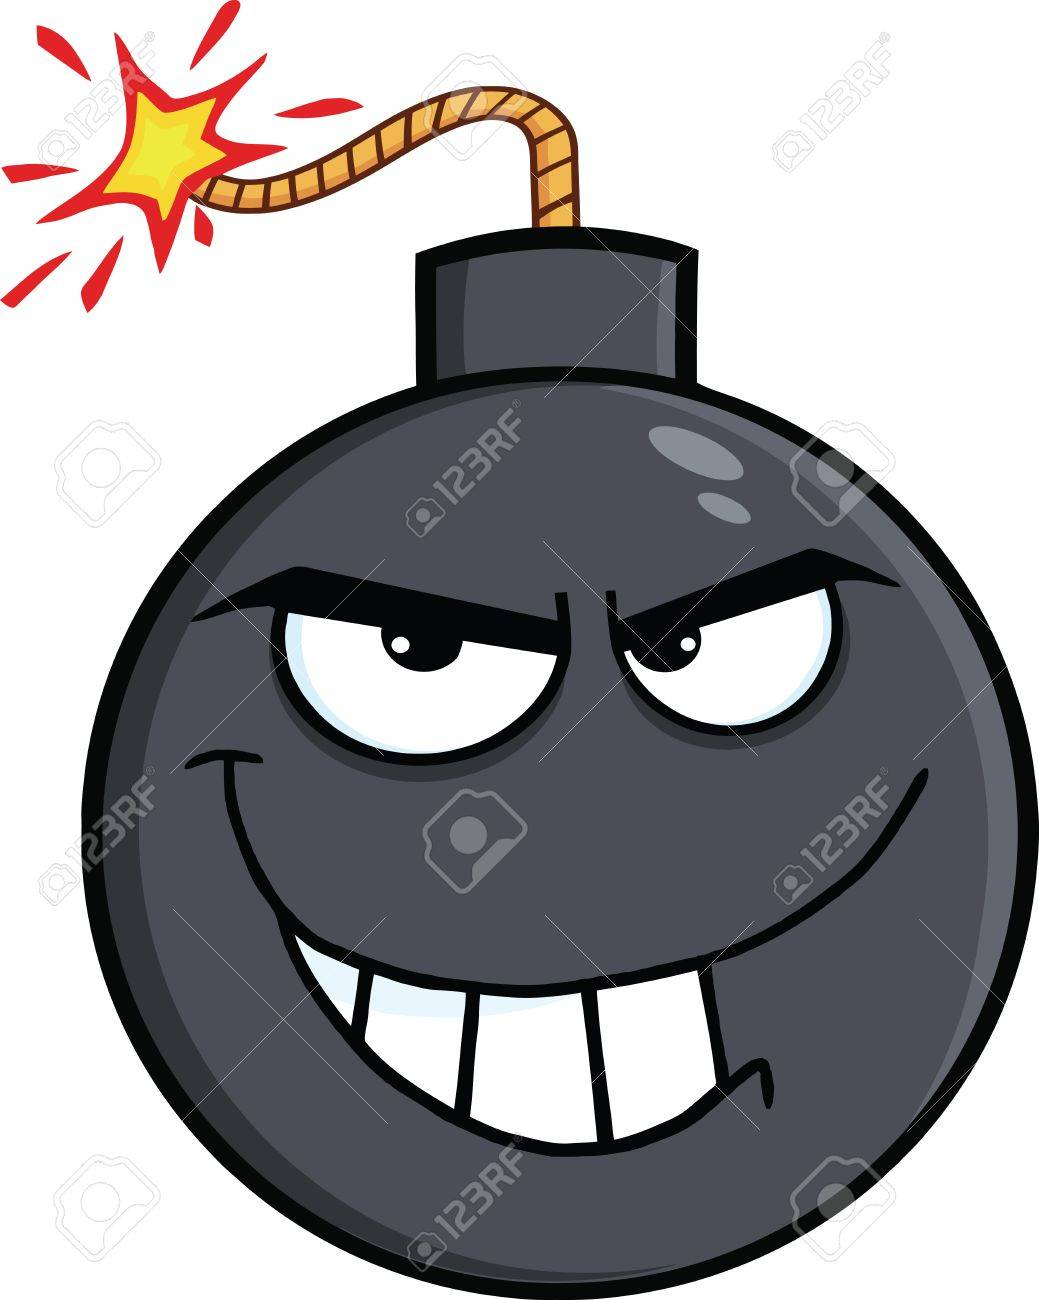 Evil Bomb Cartoon Character  Illustration Isolated on white Stock Vector - 27460949